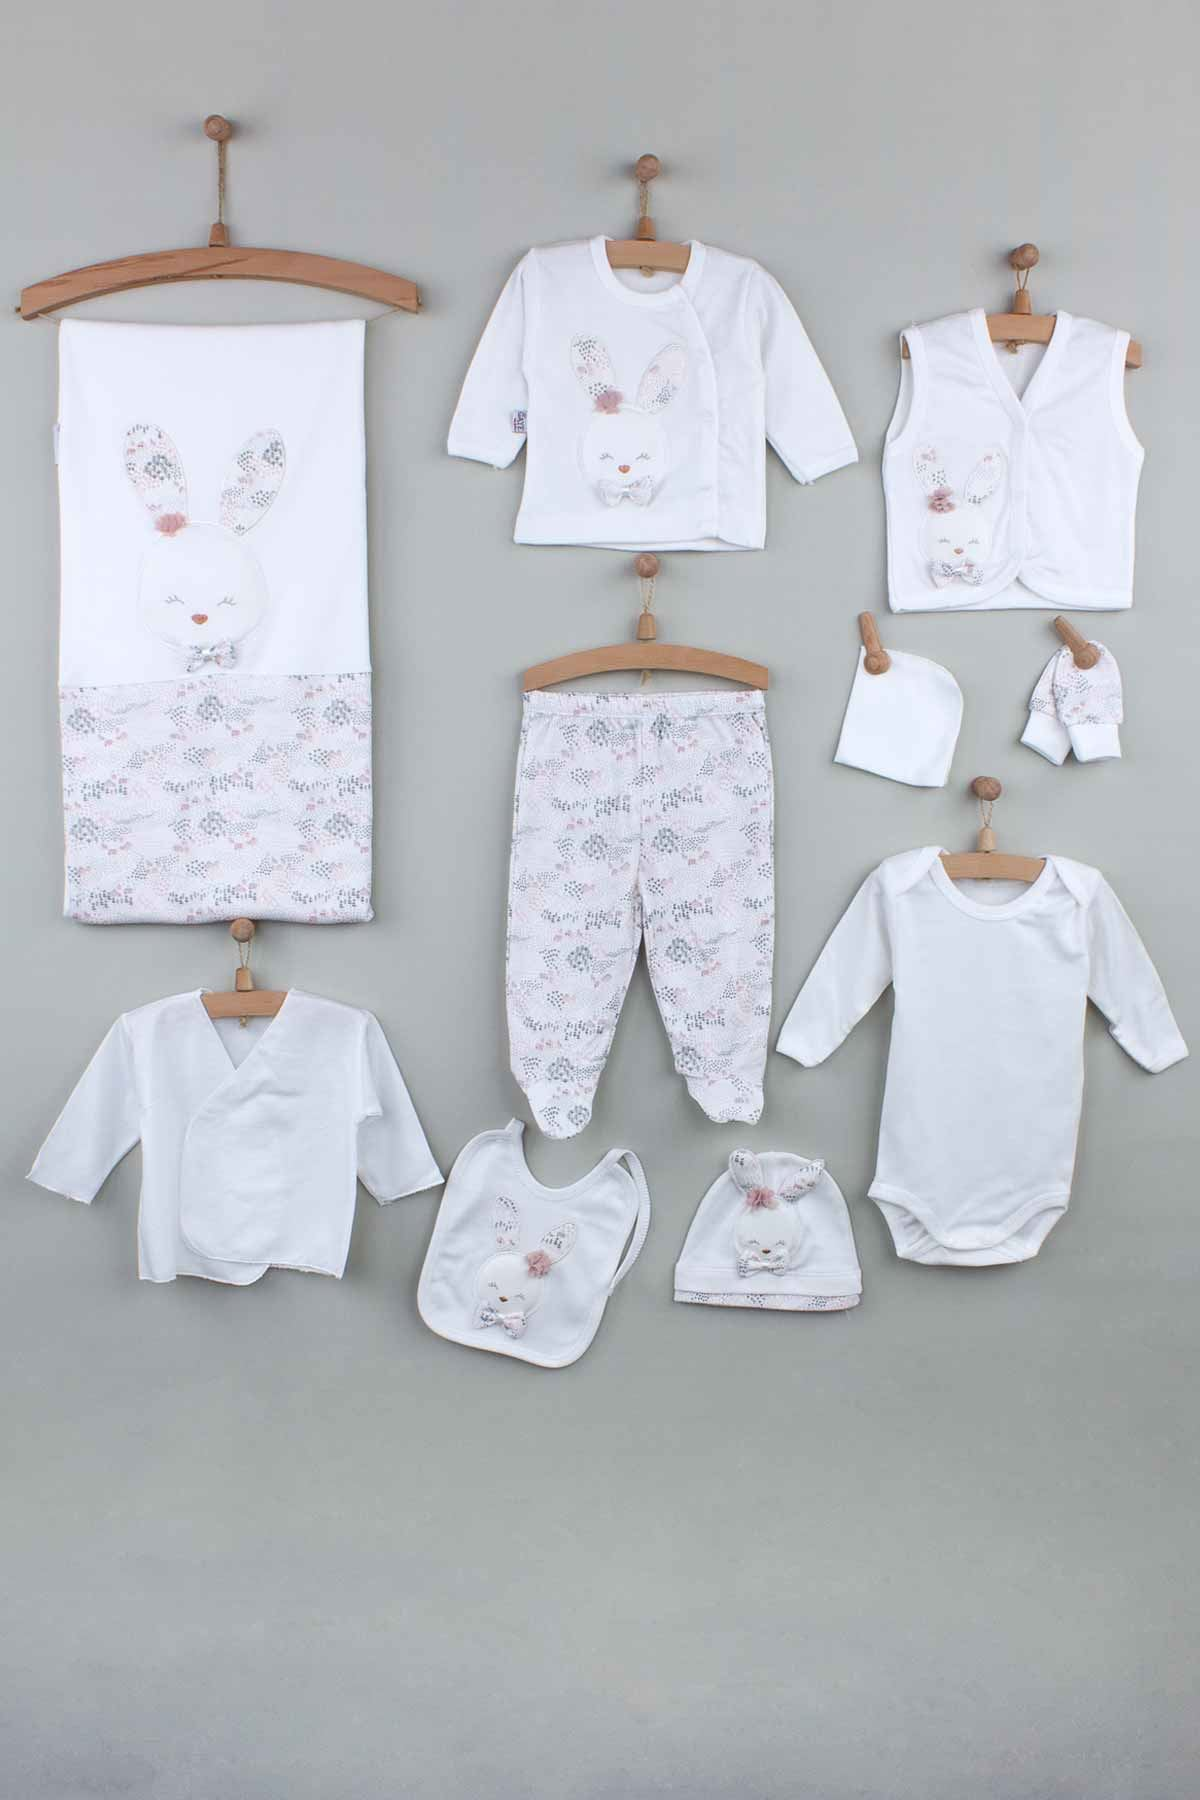 White baby girl newborn hospital outlet 10 piece set cute warm seasonal suit style models all babies need models